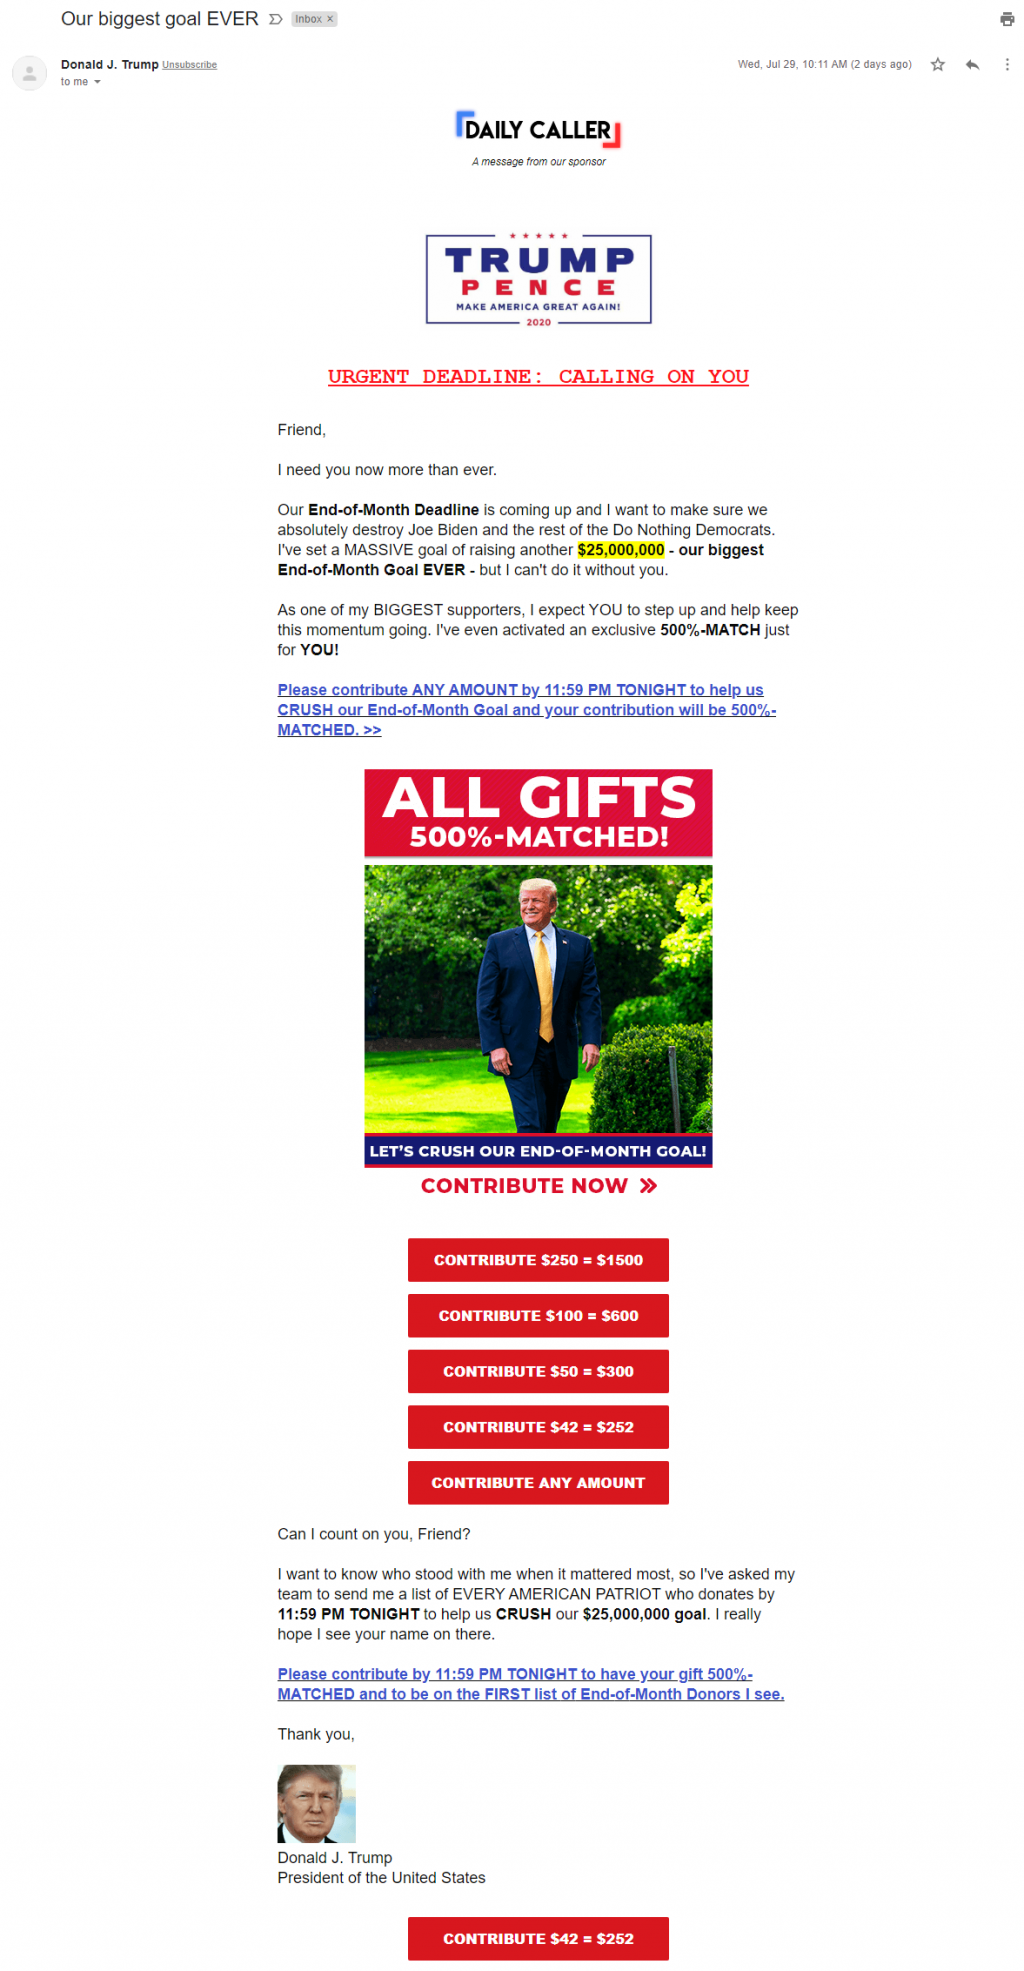 Daily Caller sponsored email for Trump example 1